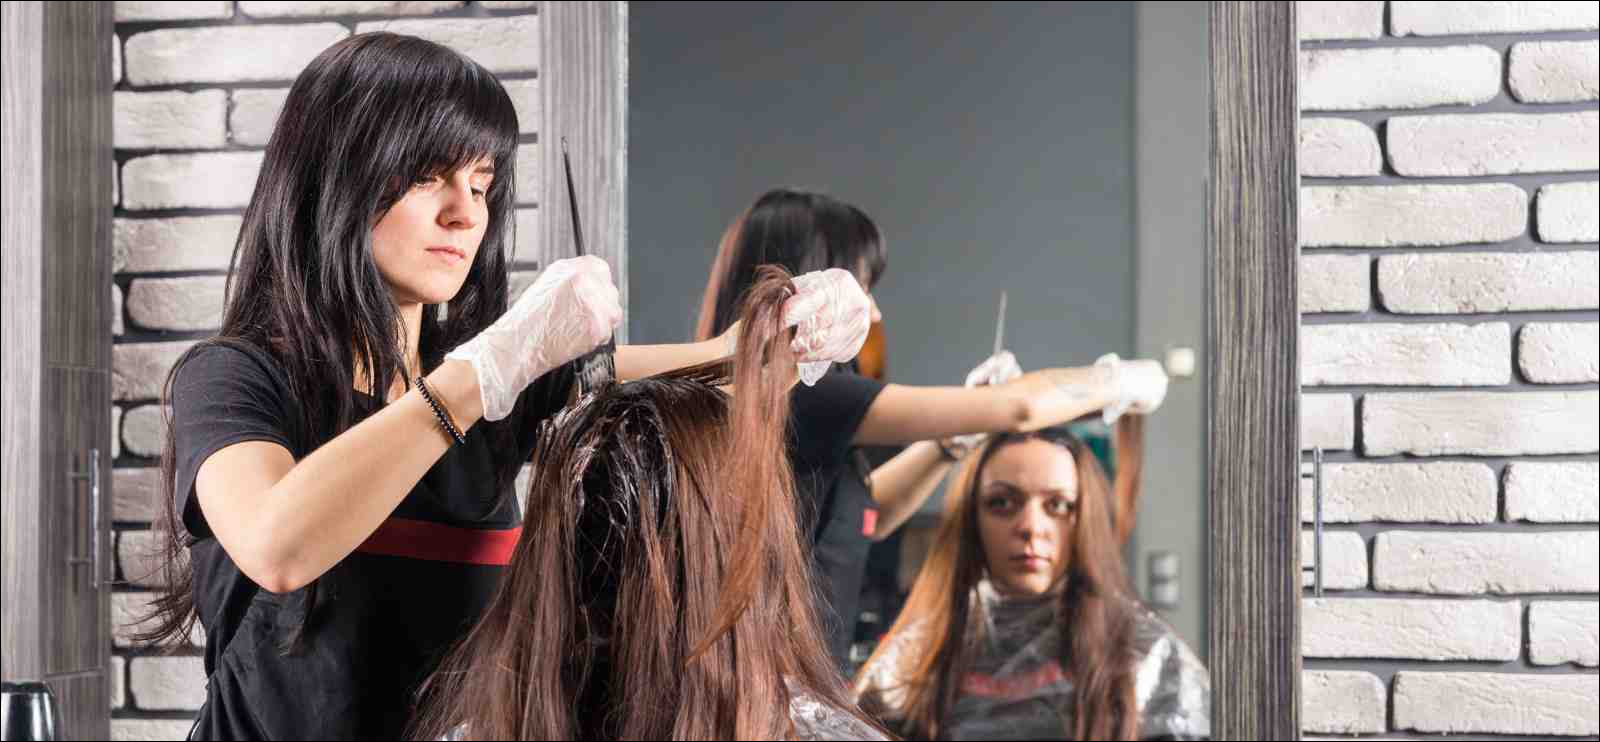 stylist coloring woman's hair